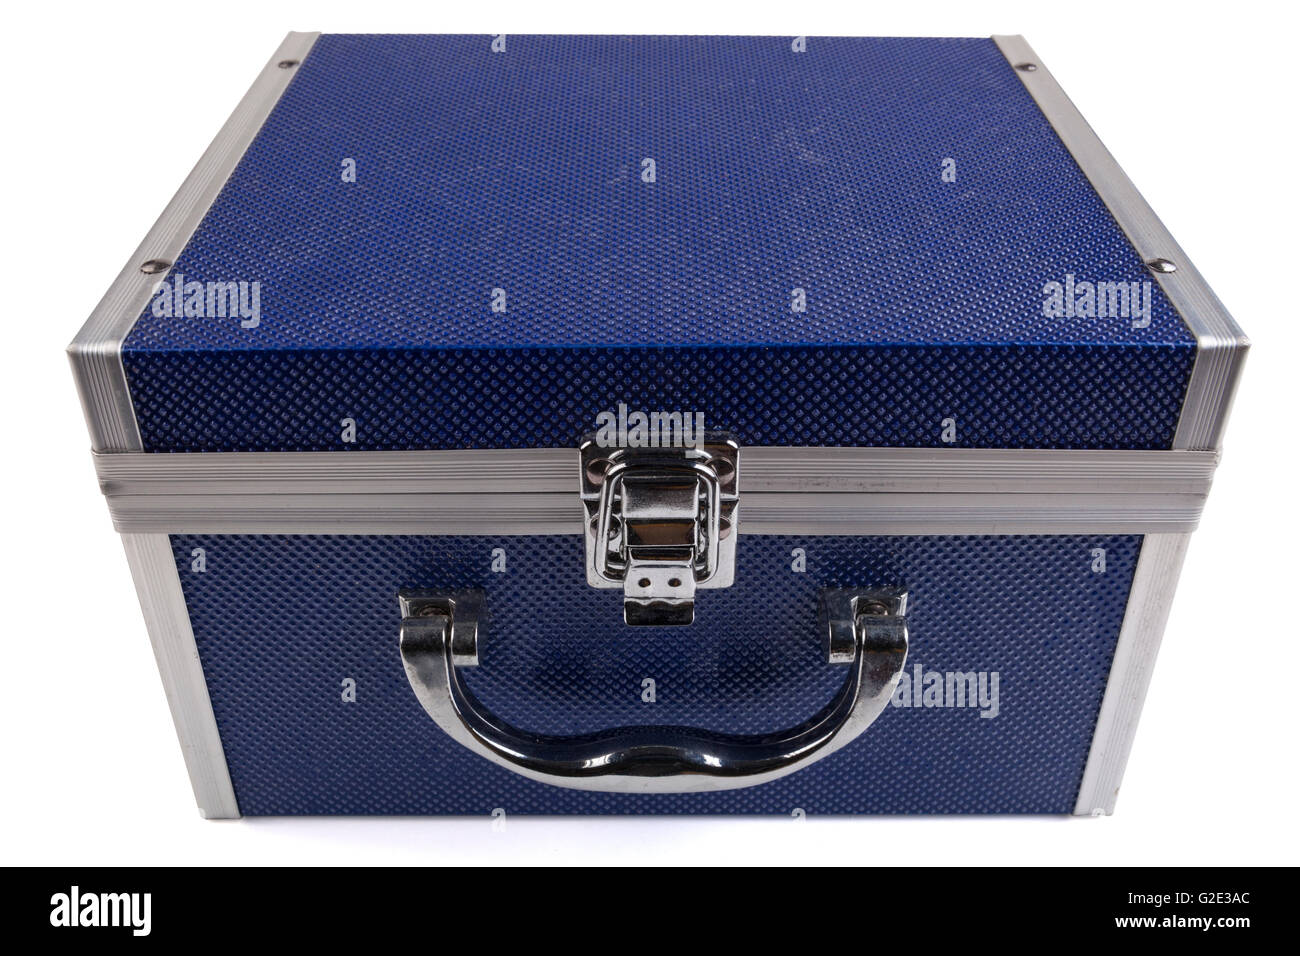 Blue jewelry box closed top view and isolated on white background - Stock Image